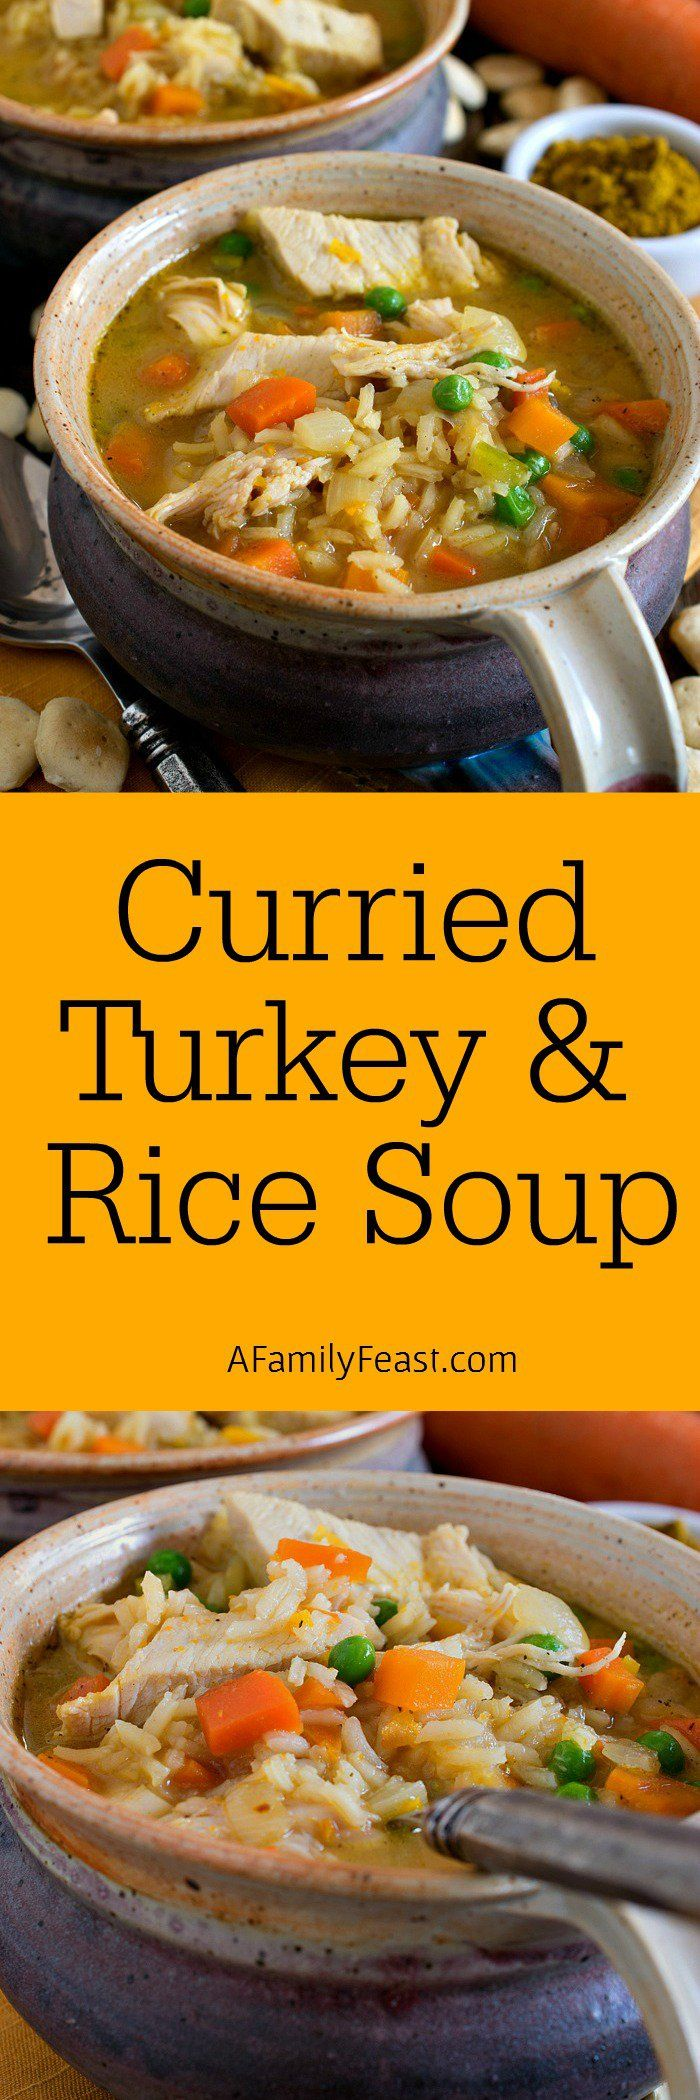 ... Turkey Curry on Pinterest | Turkey curry recipe, Leftover turkey curry